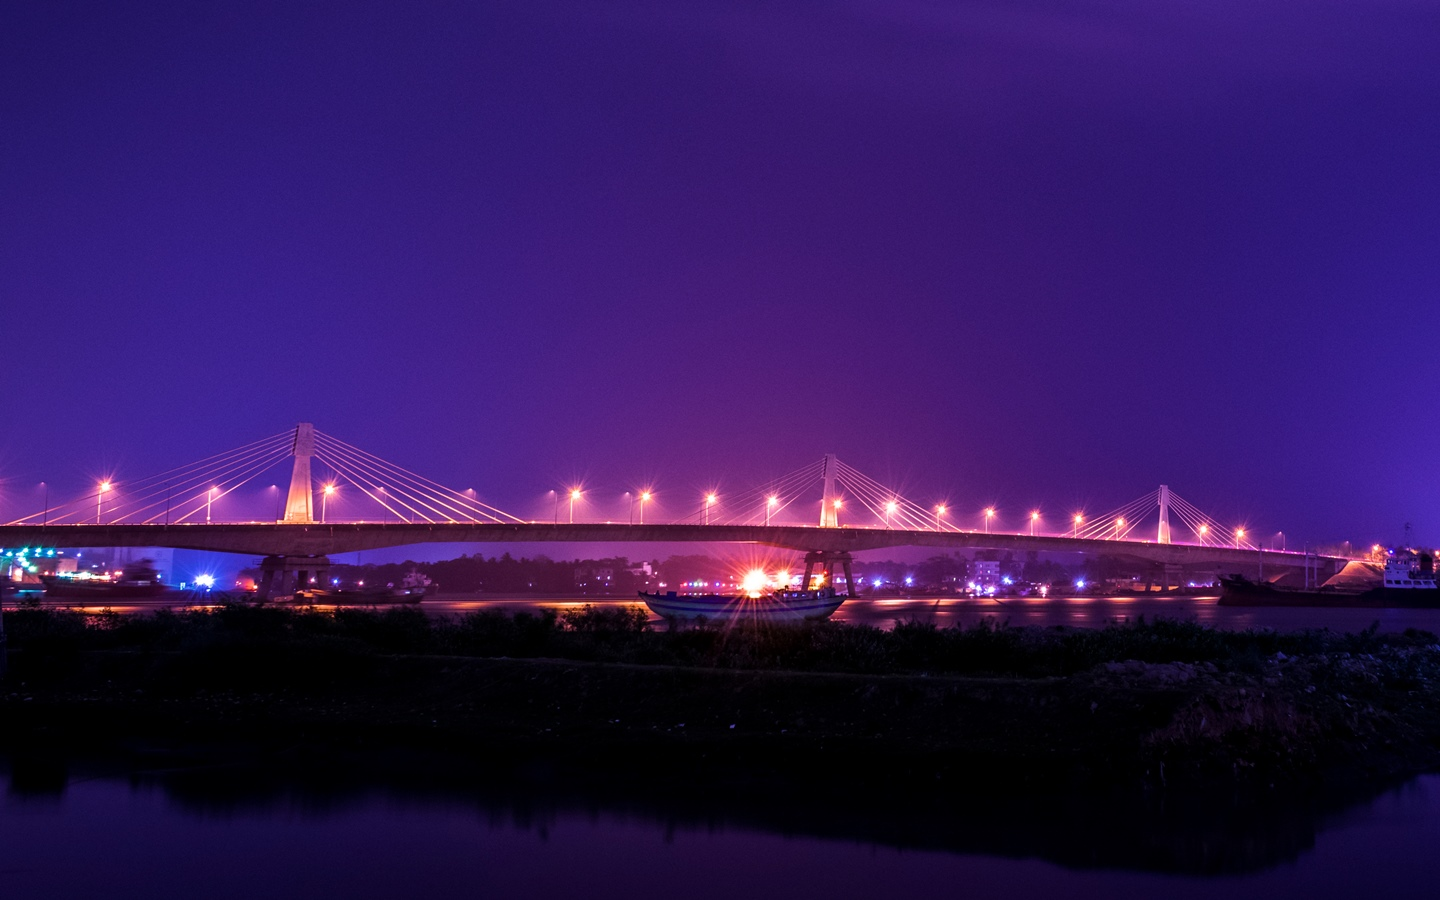 This is the third bridge bridge over the Karnafuli river